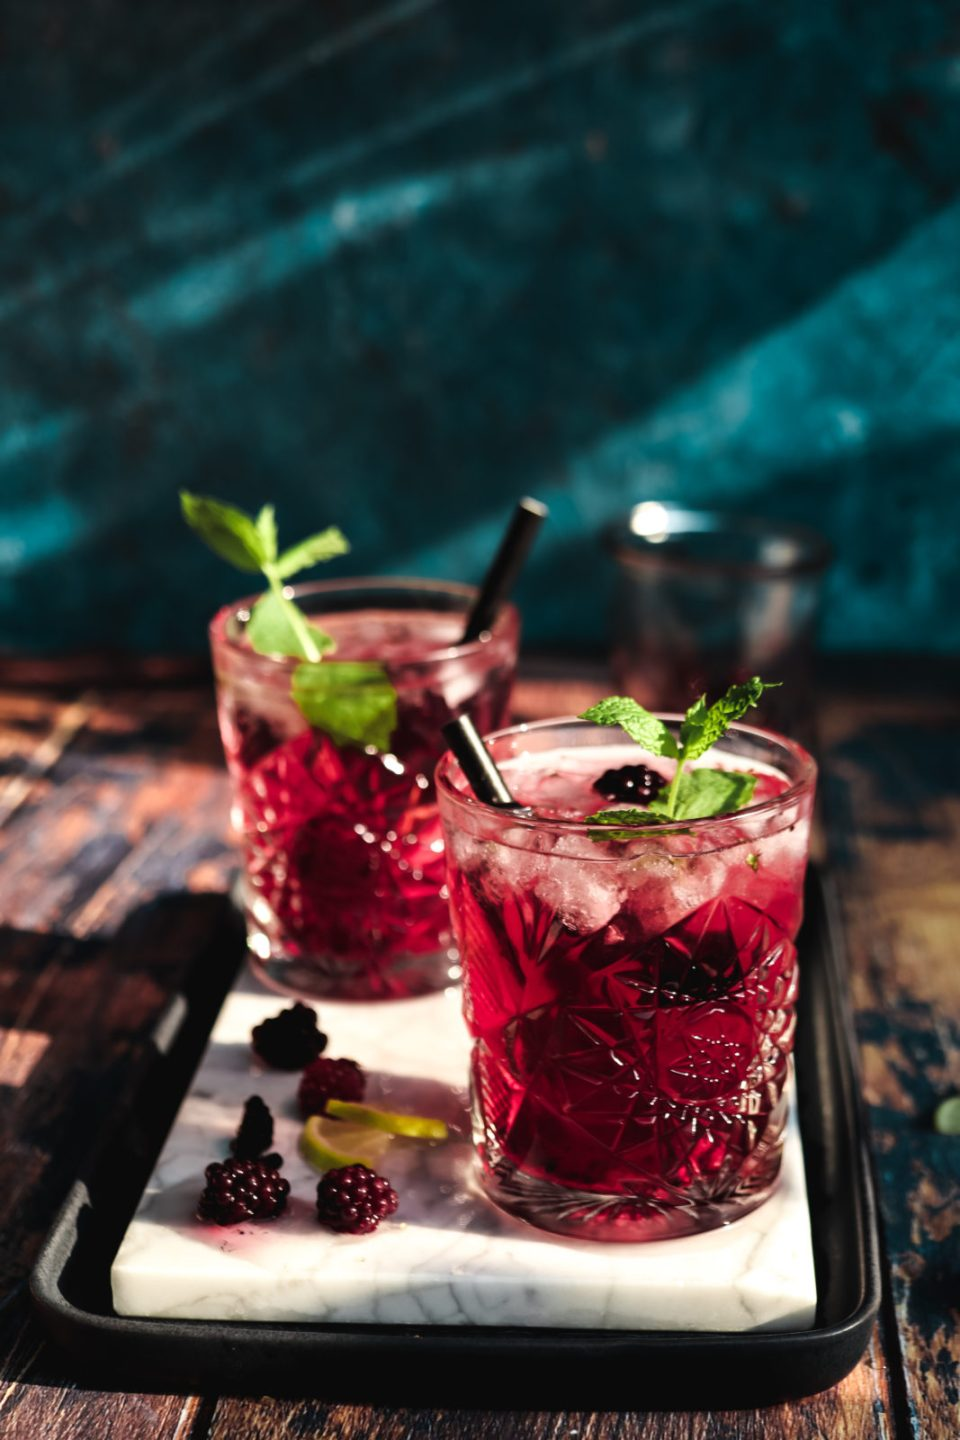 Summer Nights Blackberry-Lavender Mojito on a light marbled surface